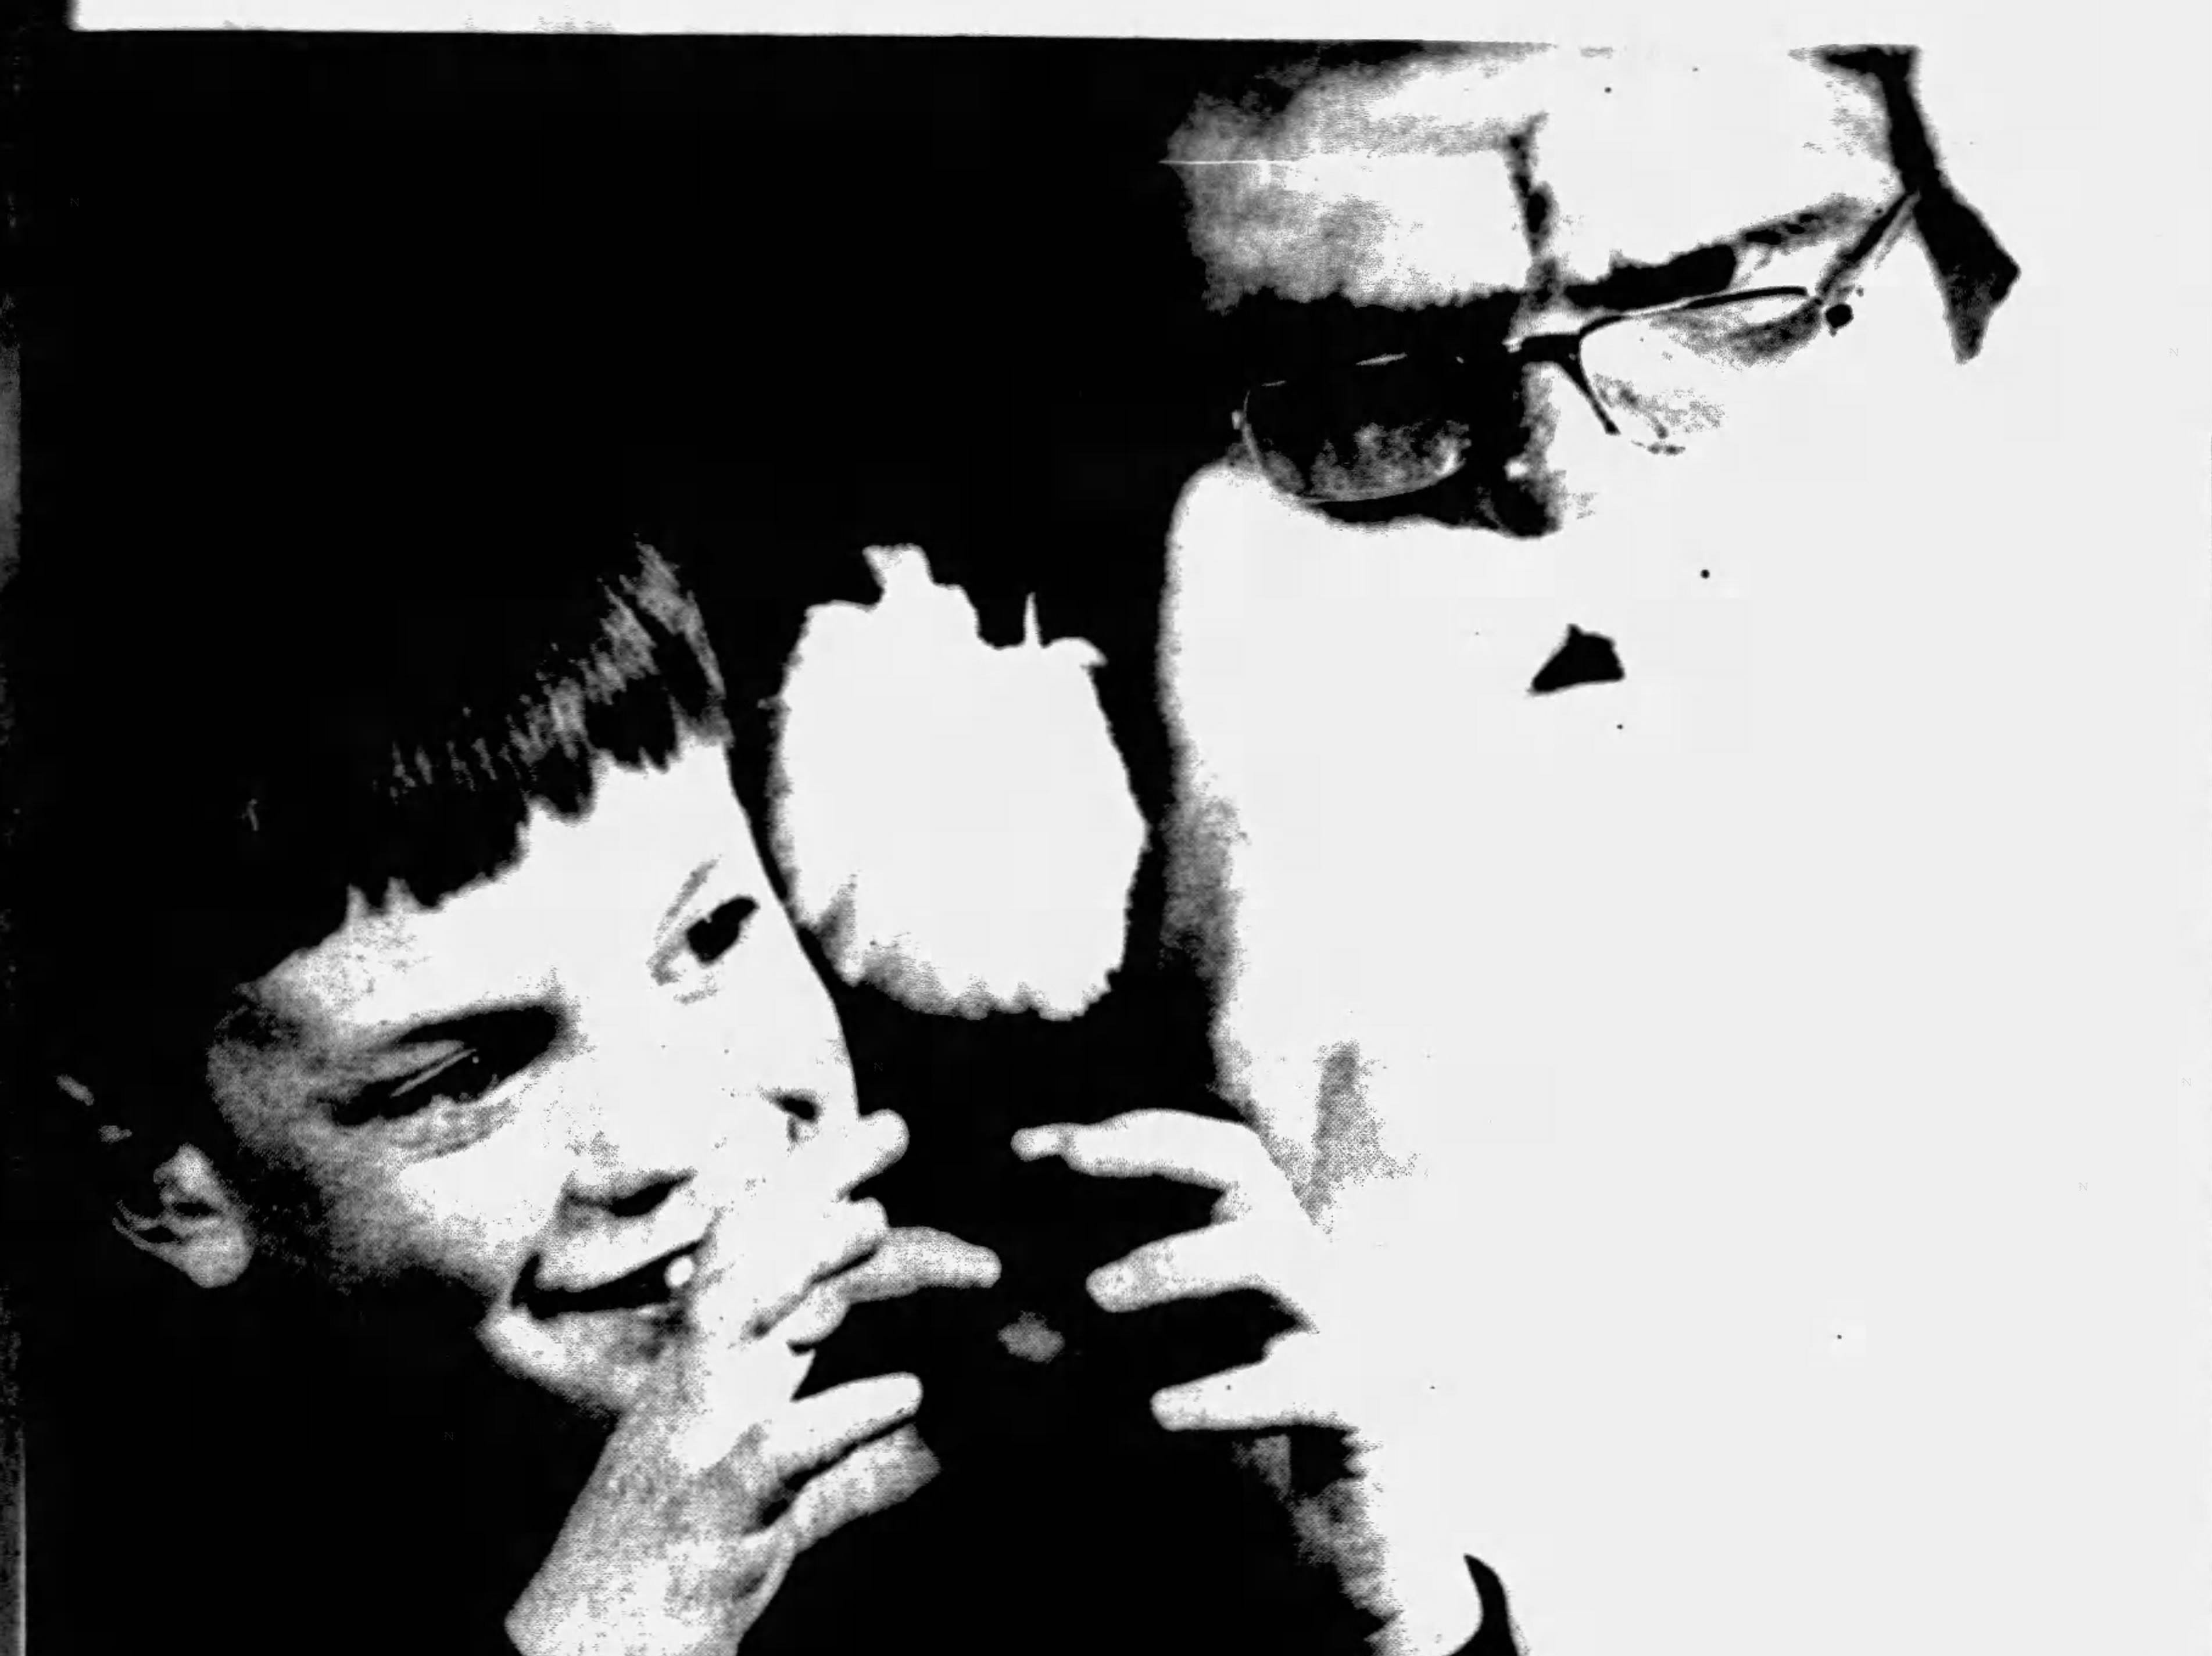 Arden resident Wilson Kieffer, 4, tells Santa Claus what he wants for Christmas during a December 1990 event in Asheville.